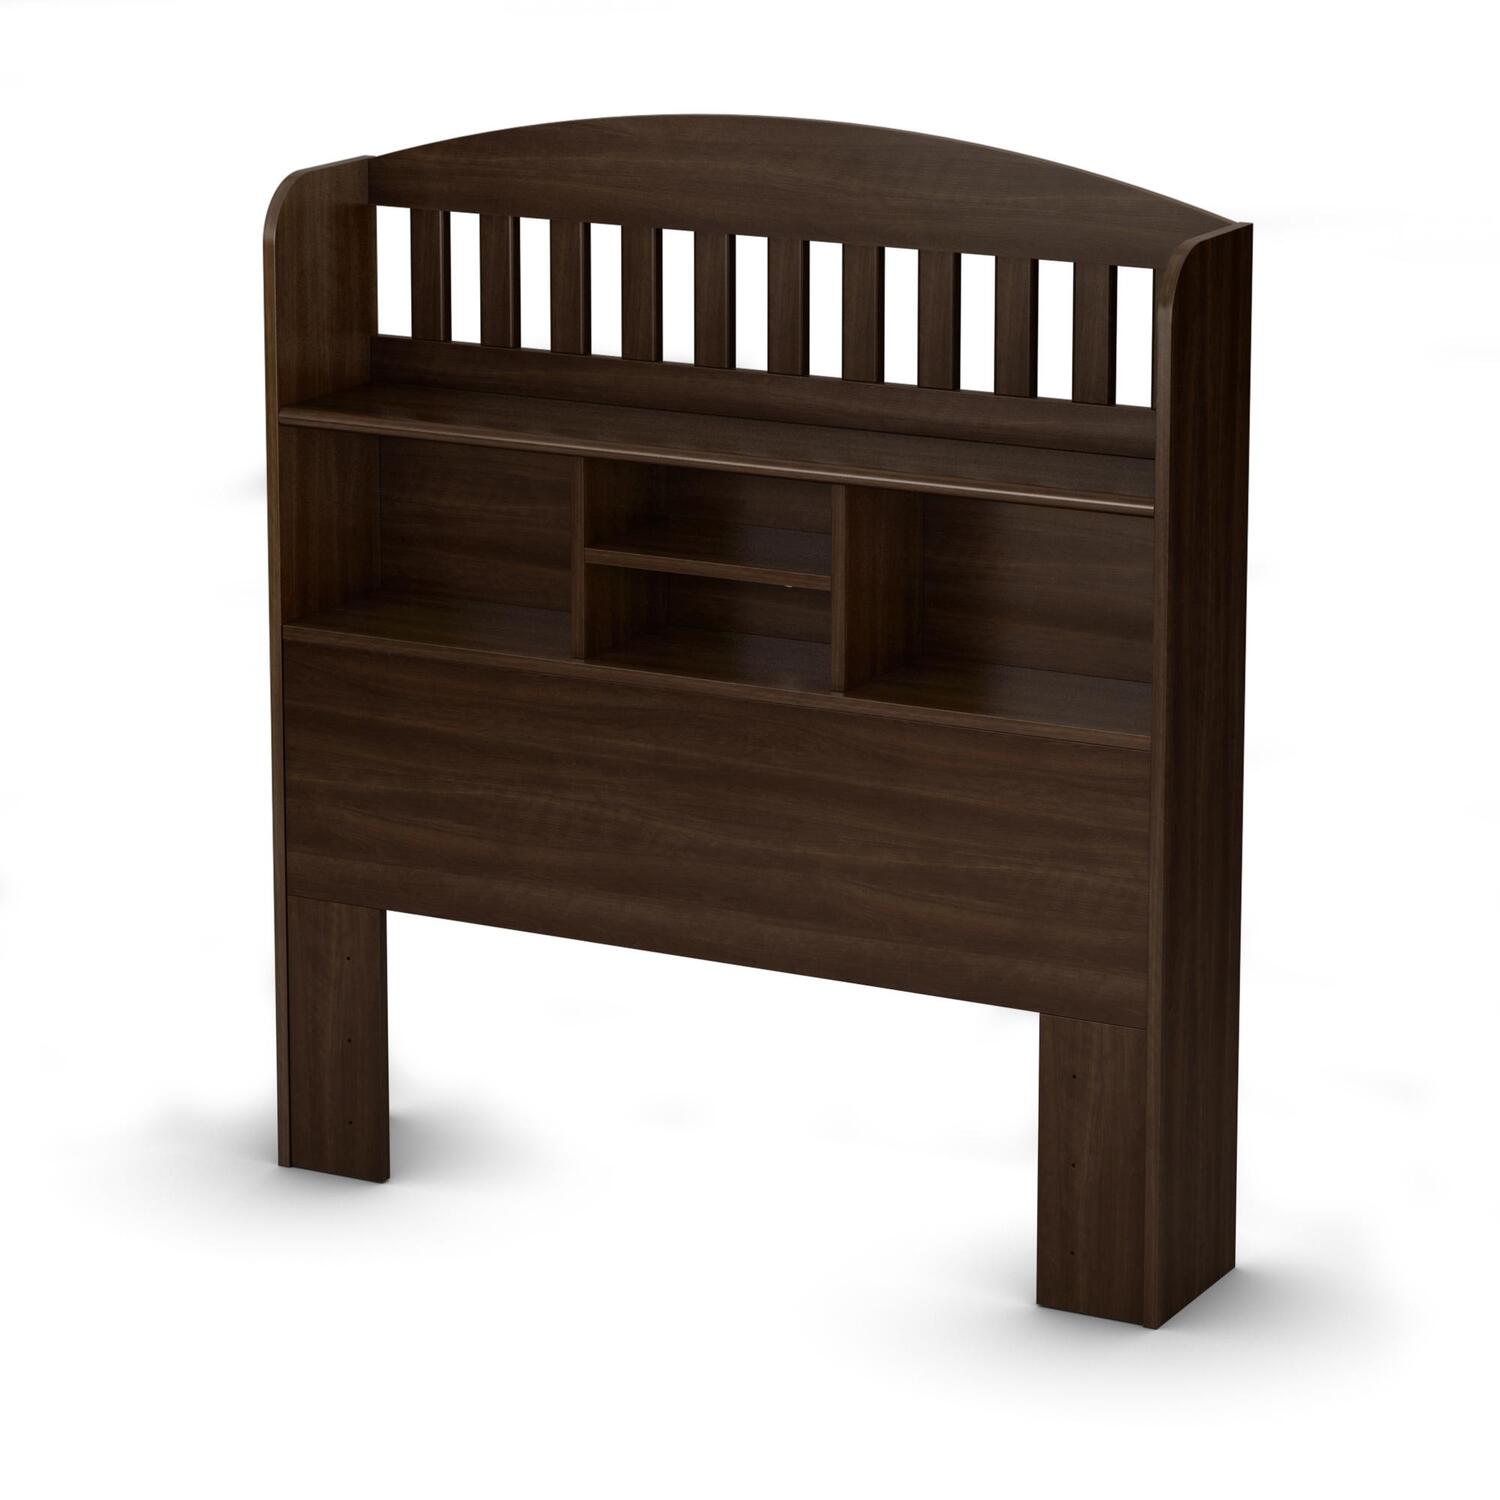 "South Shore Newton Twin Bookcase Headboard (39"") by OJ Commerce $134.99"